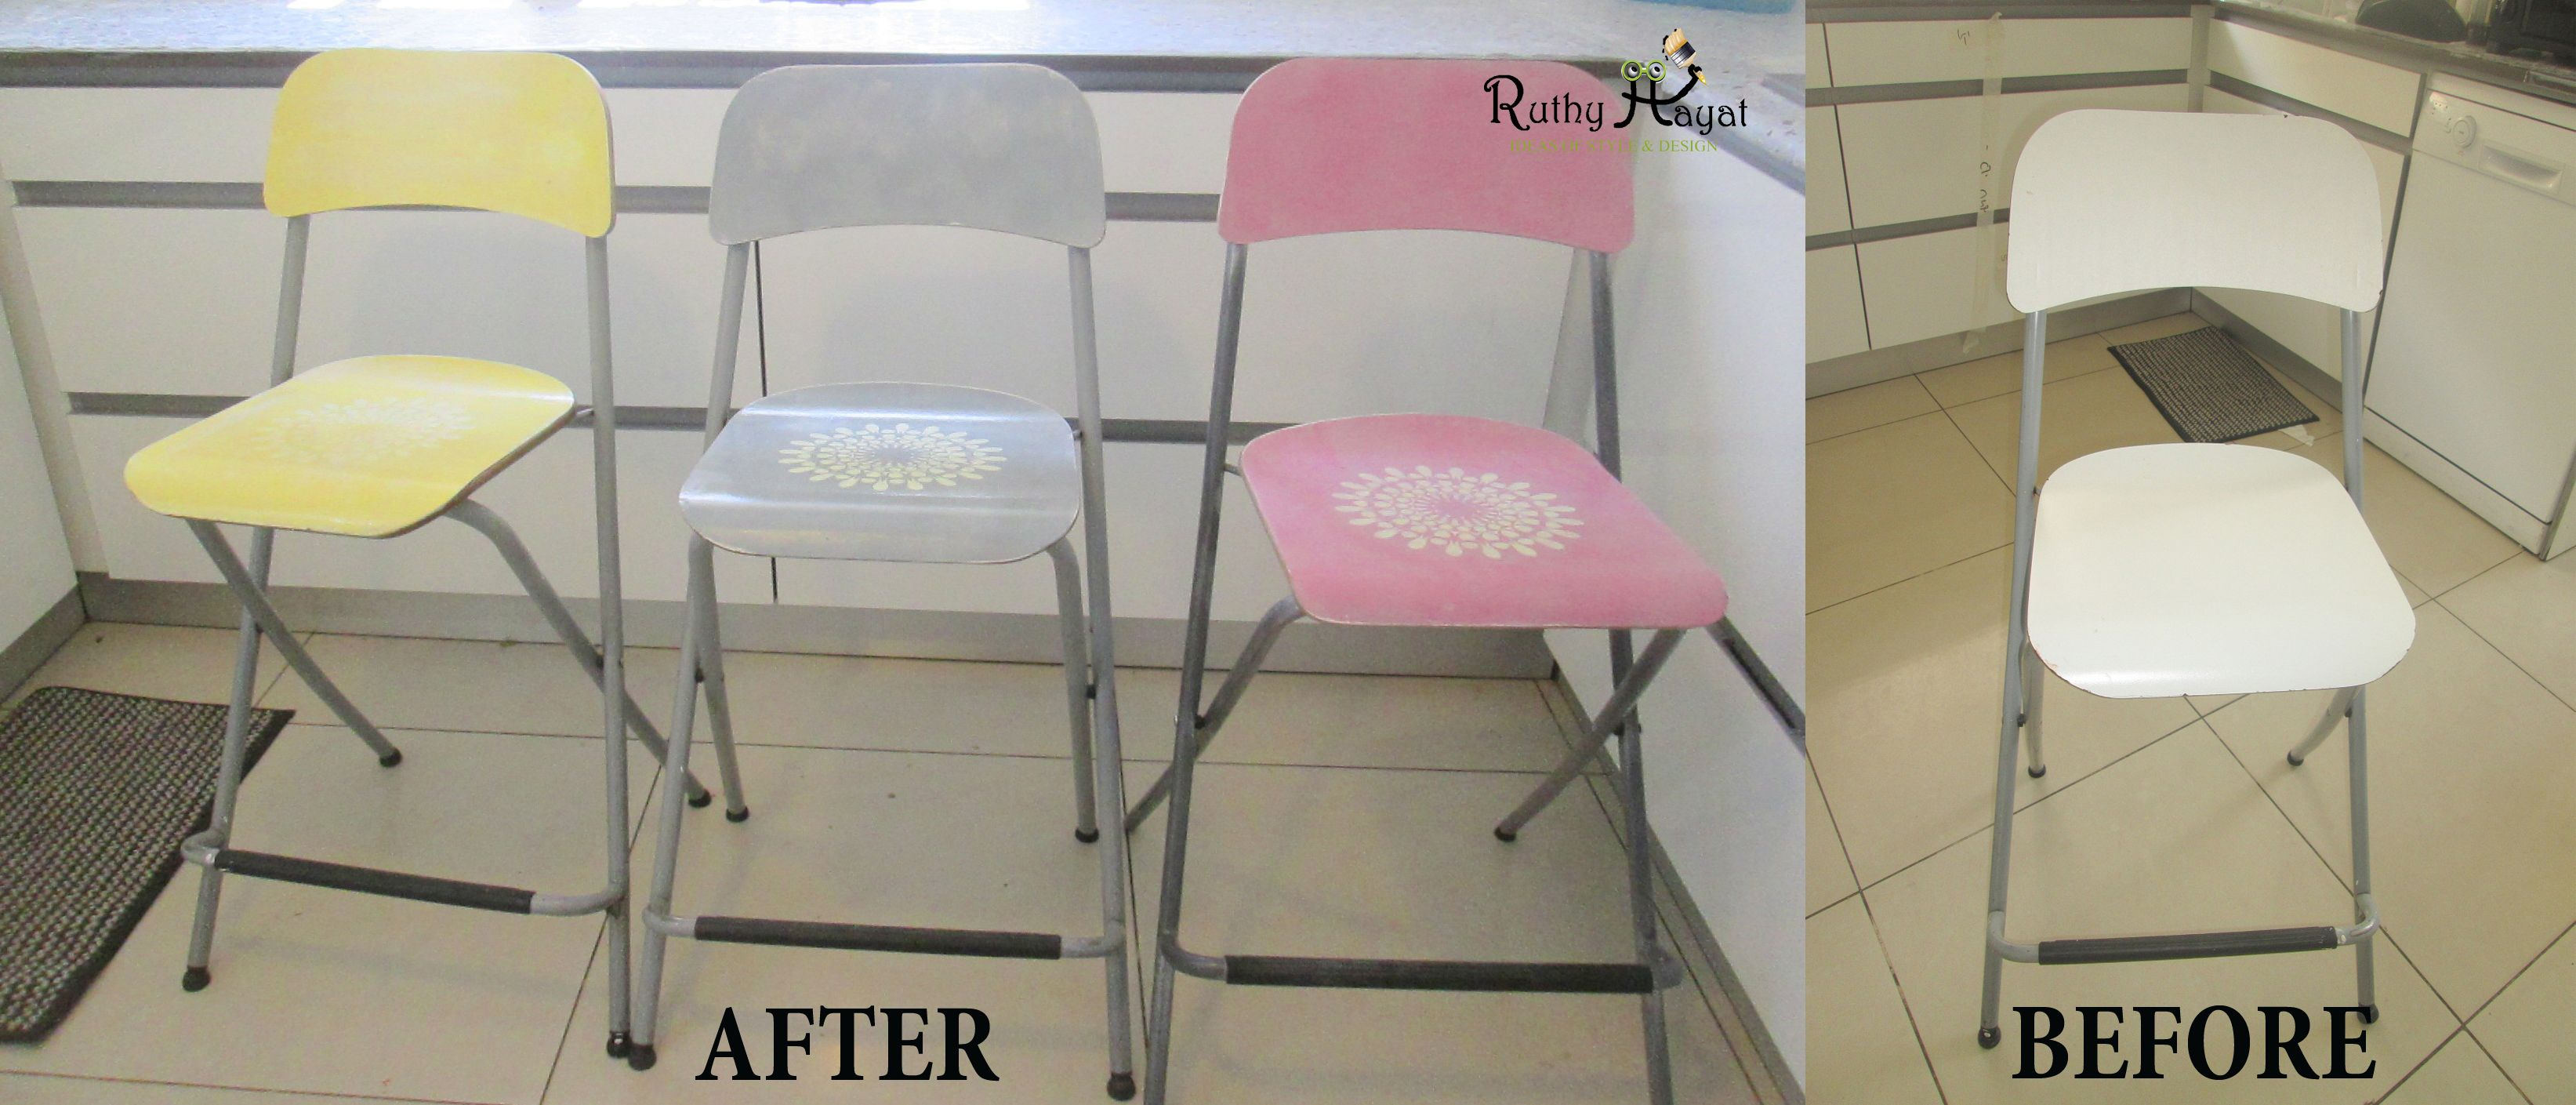 BEFORE AFTER - שדרוג מטבח בקלות ובלי כסף...